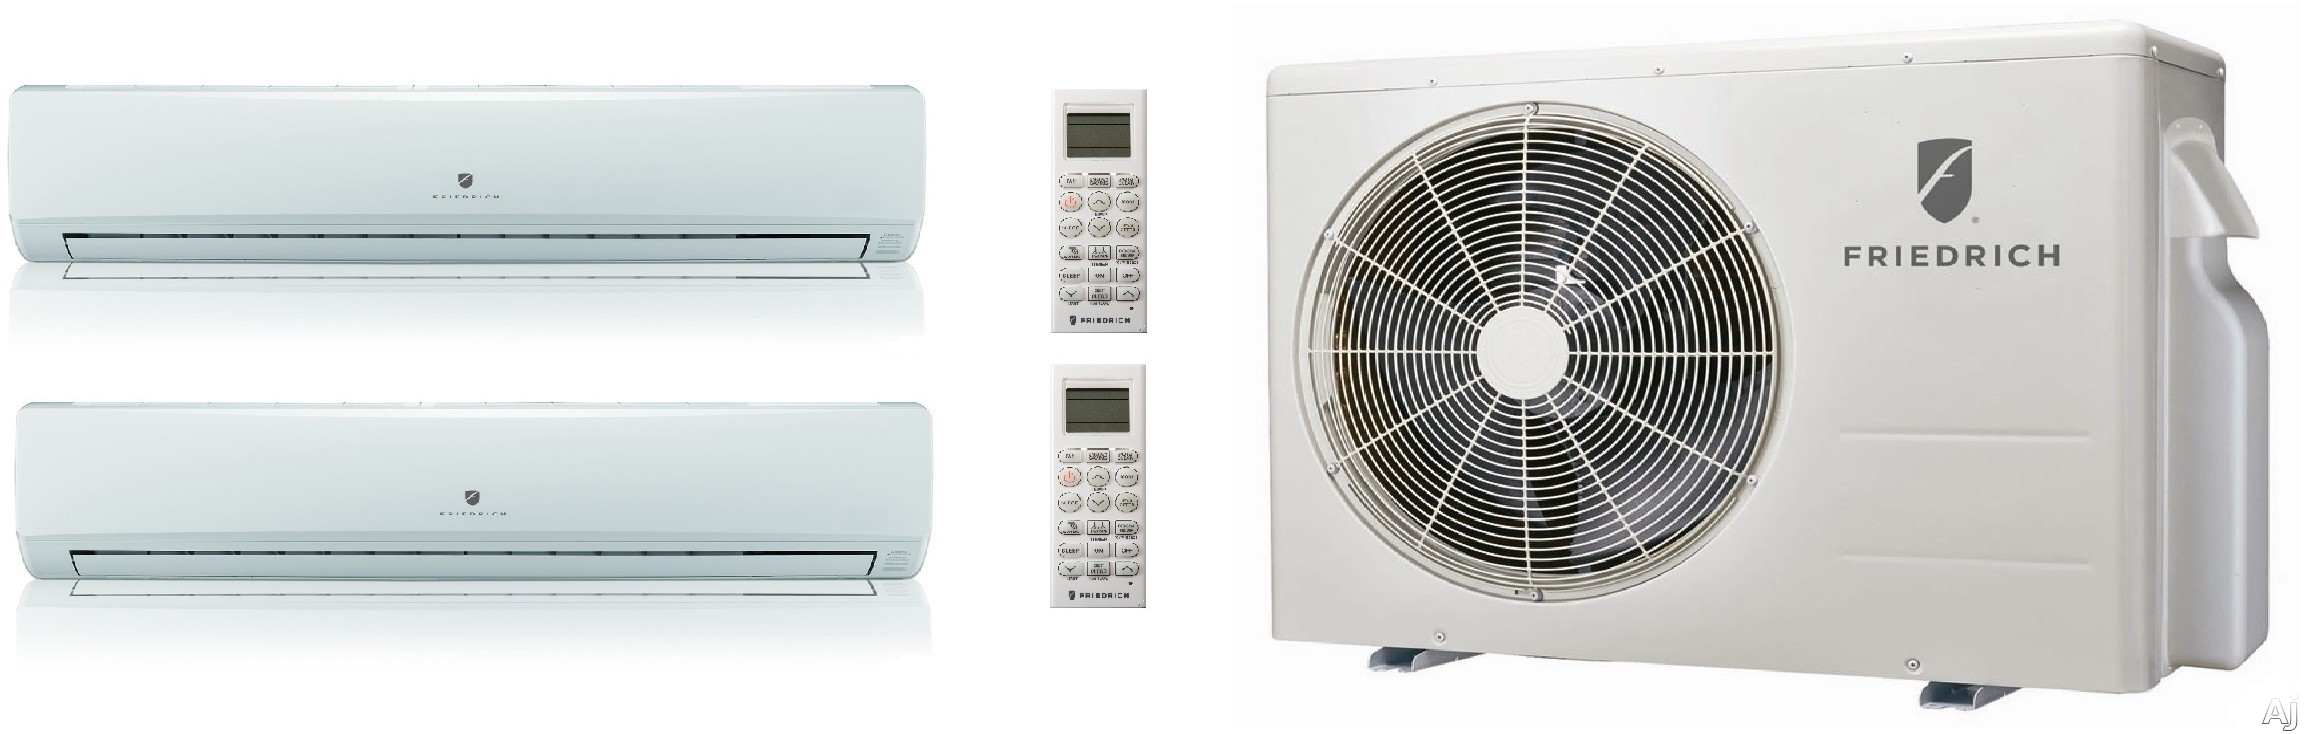 Friedrich FRIED24KB25 2 Room Mini Split System with Heat Pump, Inverter Technology, Cooling with Heat Pump, Low Ambient Operation, Auto Restart, R-410A Refrigerant and DiamonGold Advanced Corrosion Protection FRIED24KB25